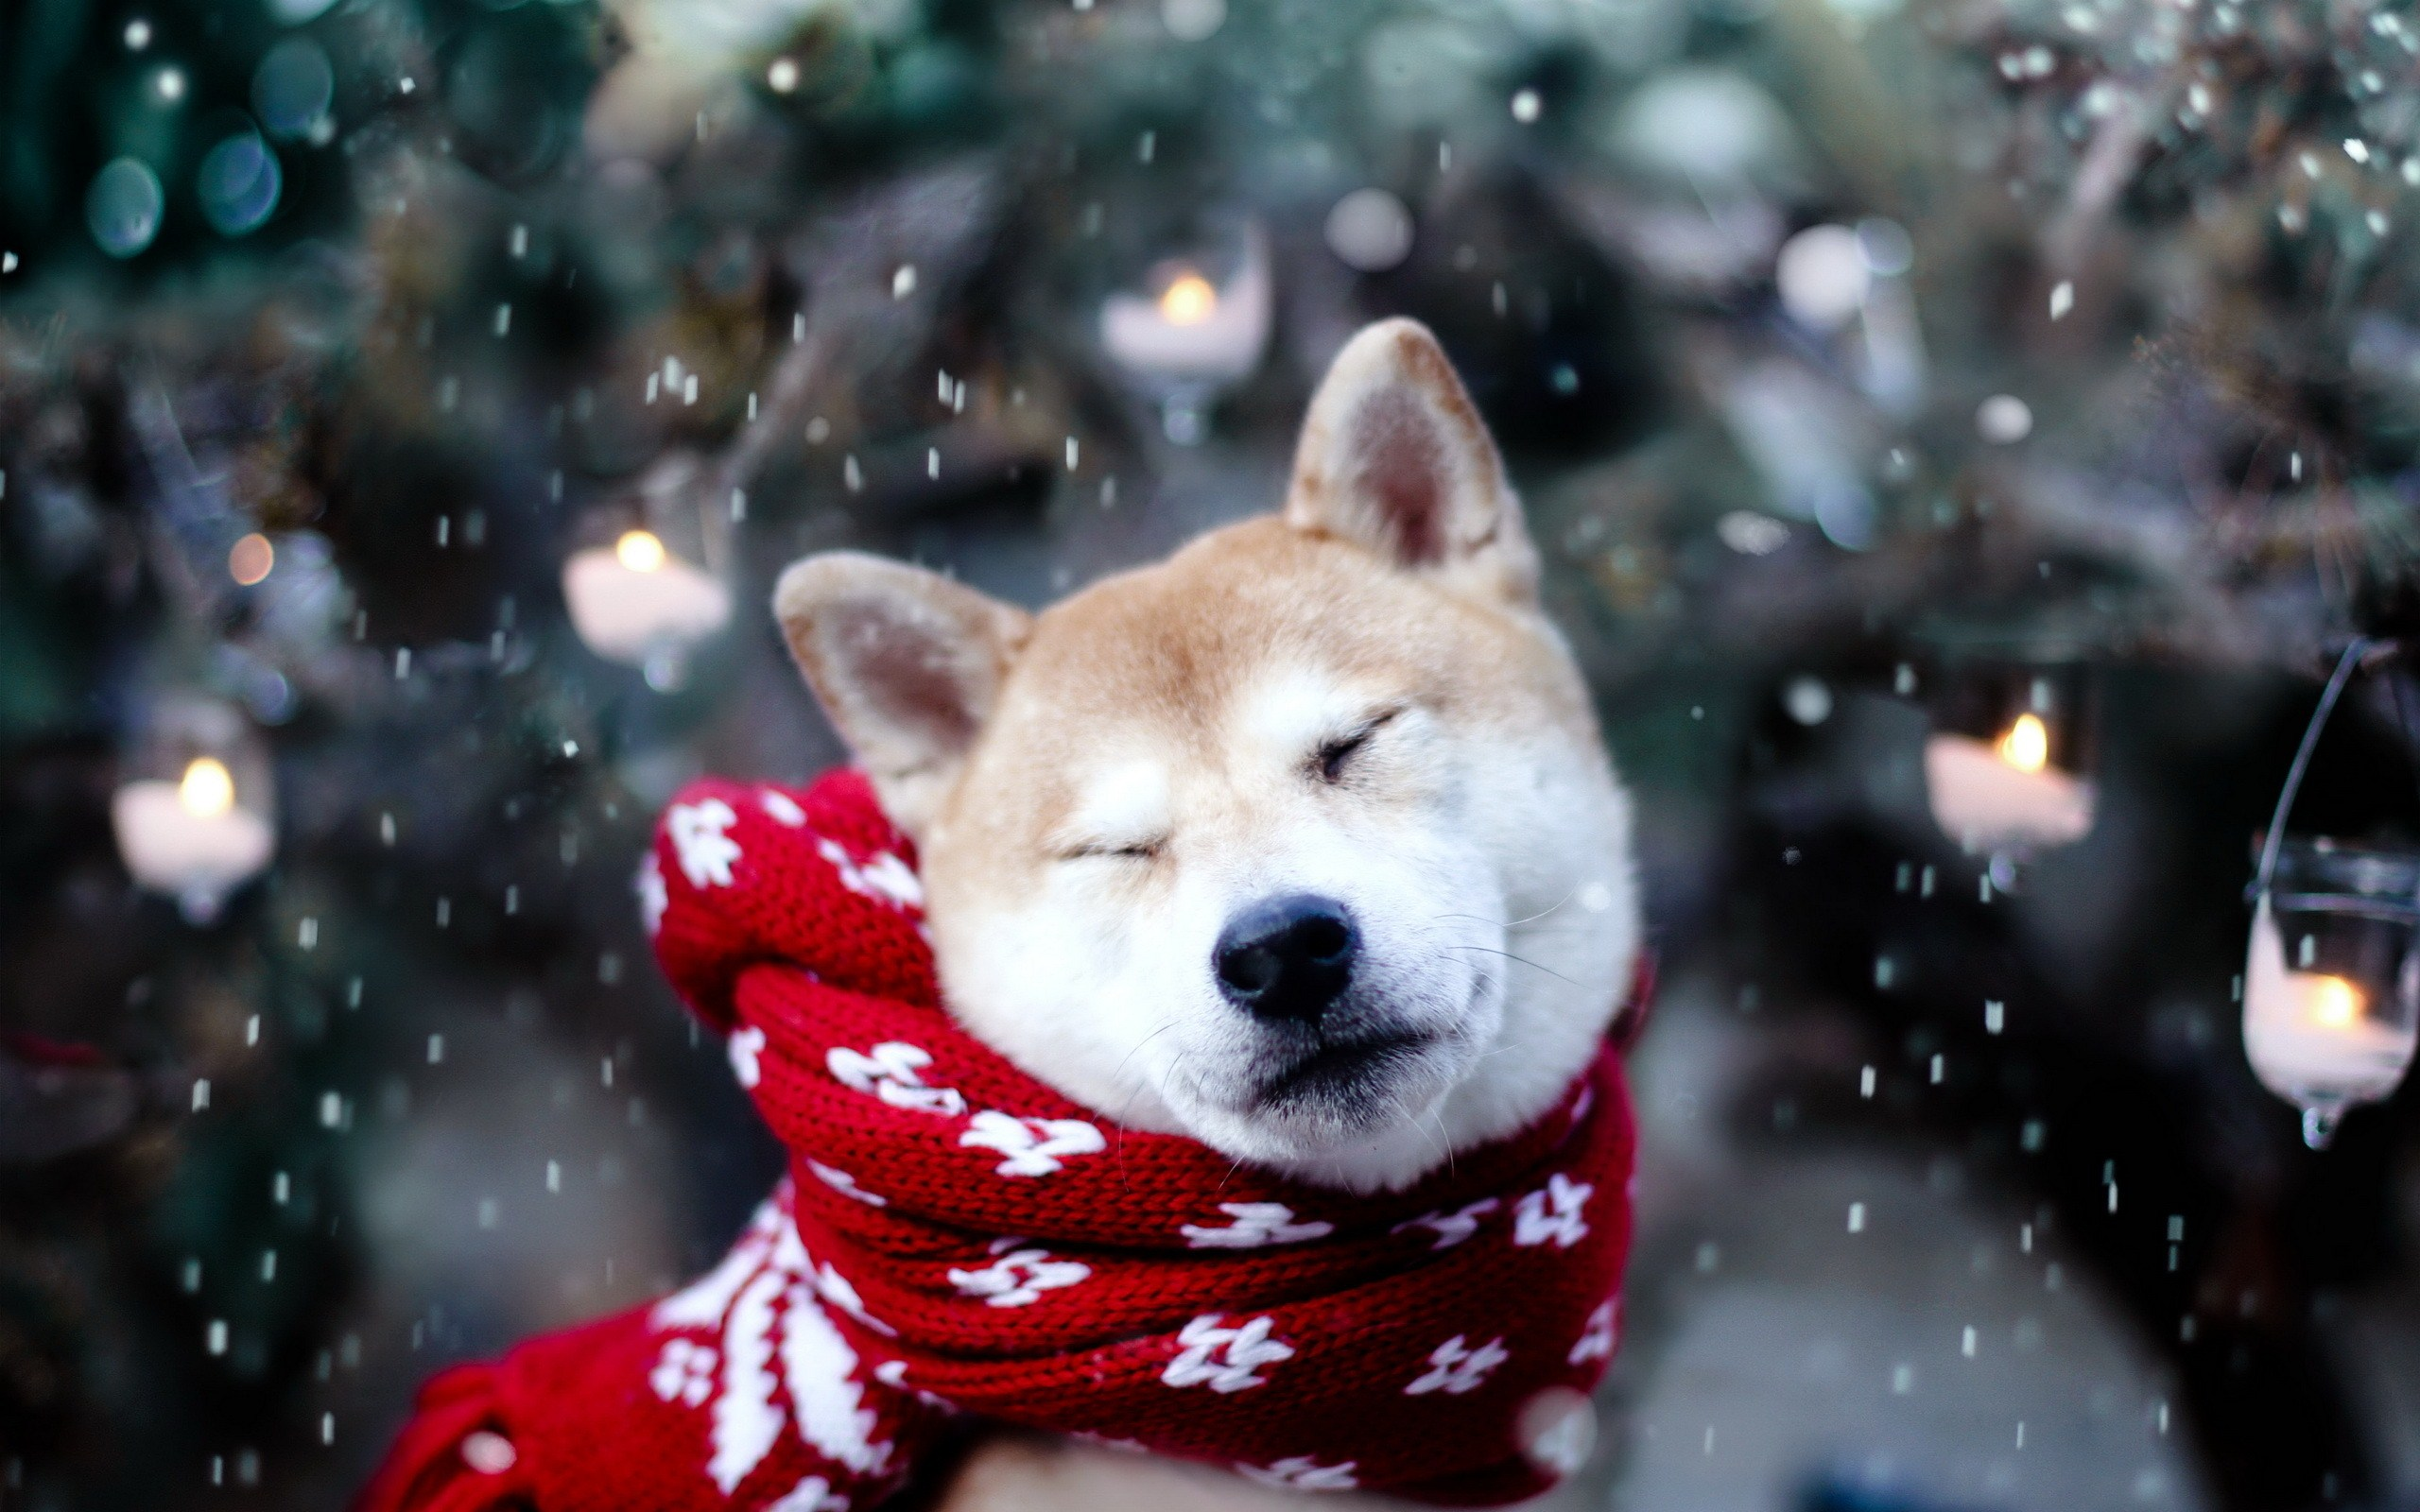 Dogs in winter photo